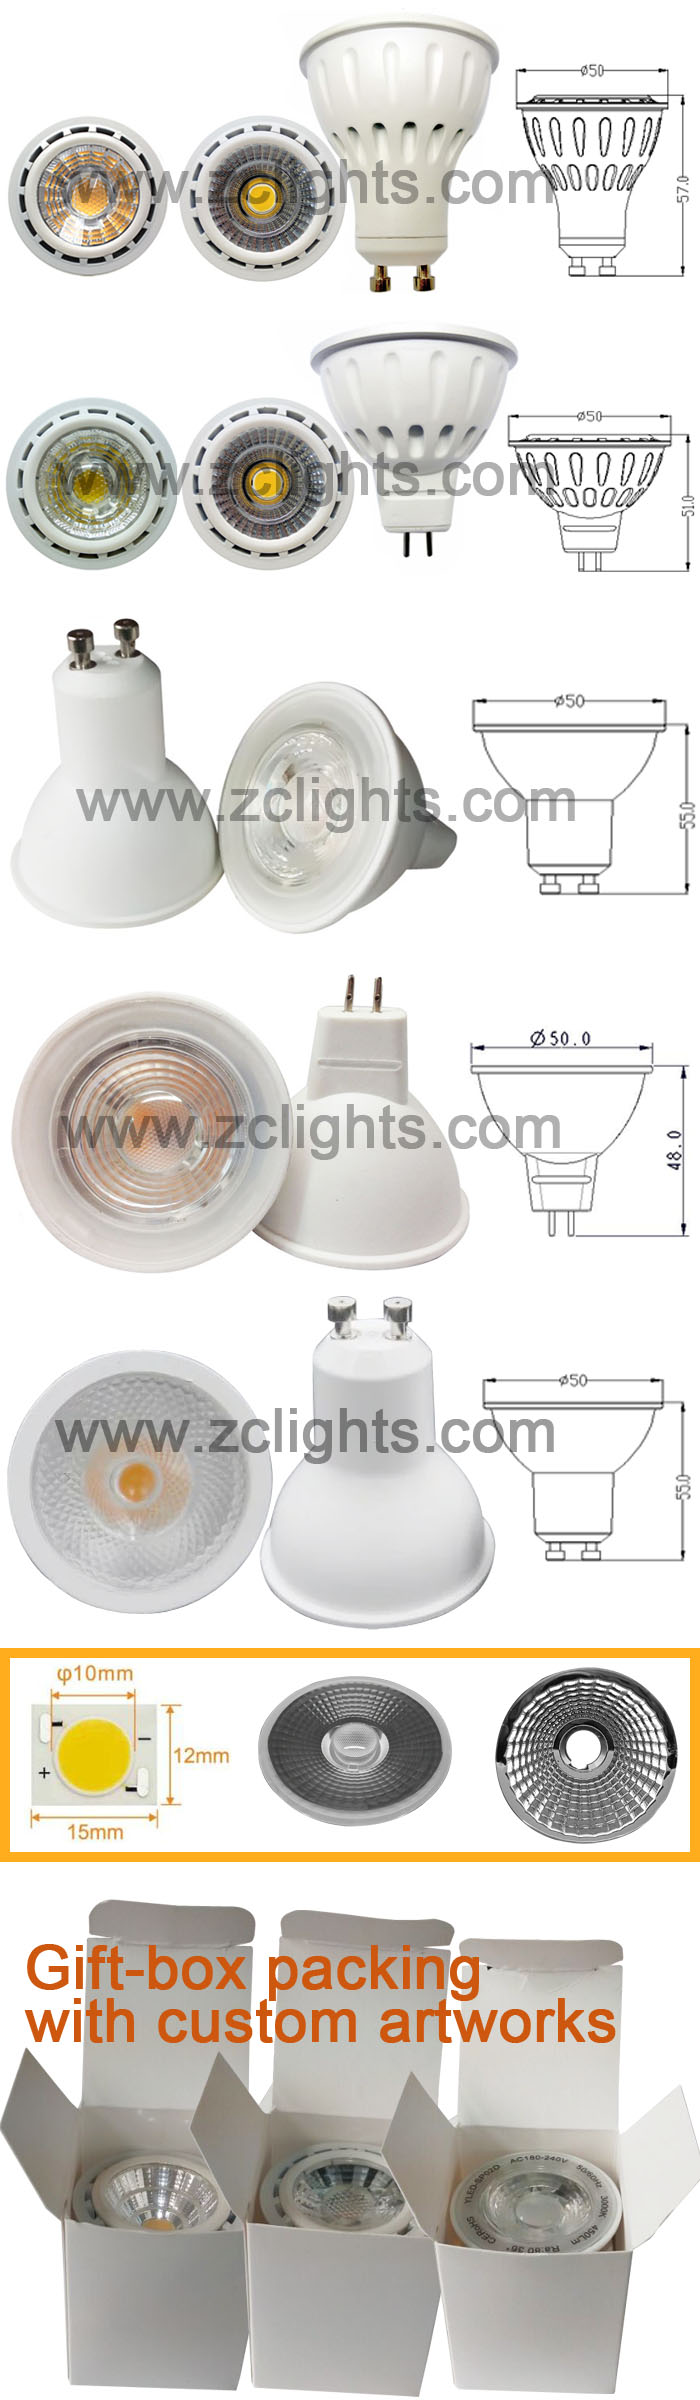 Dimmable 7W GU10 LED Spot Light with Ce